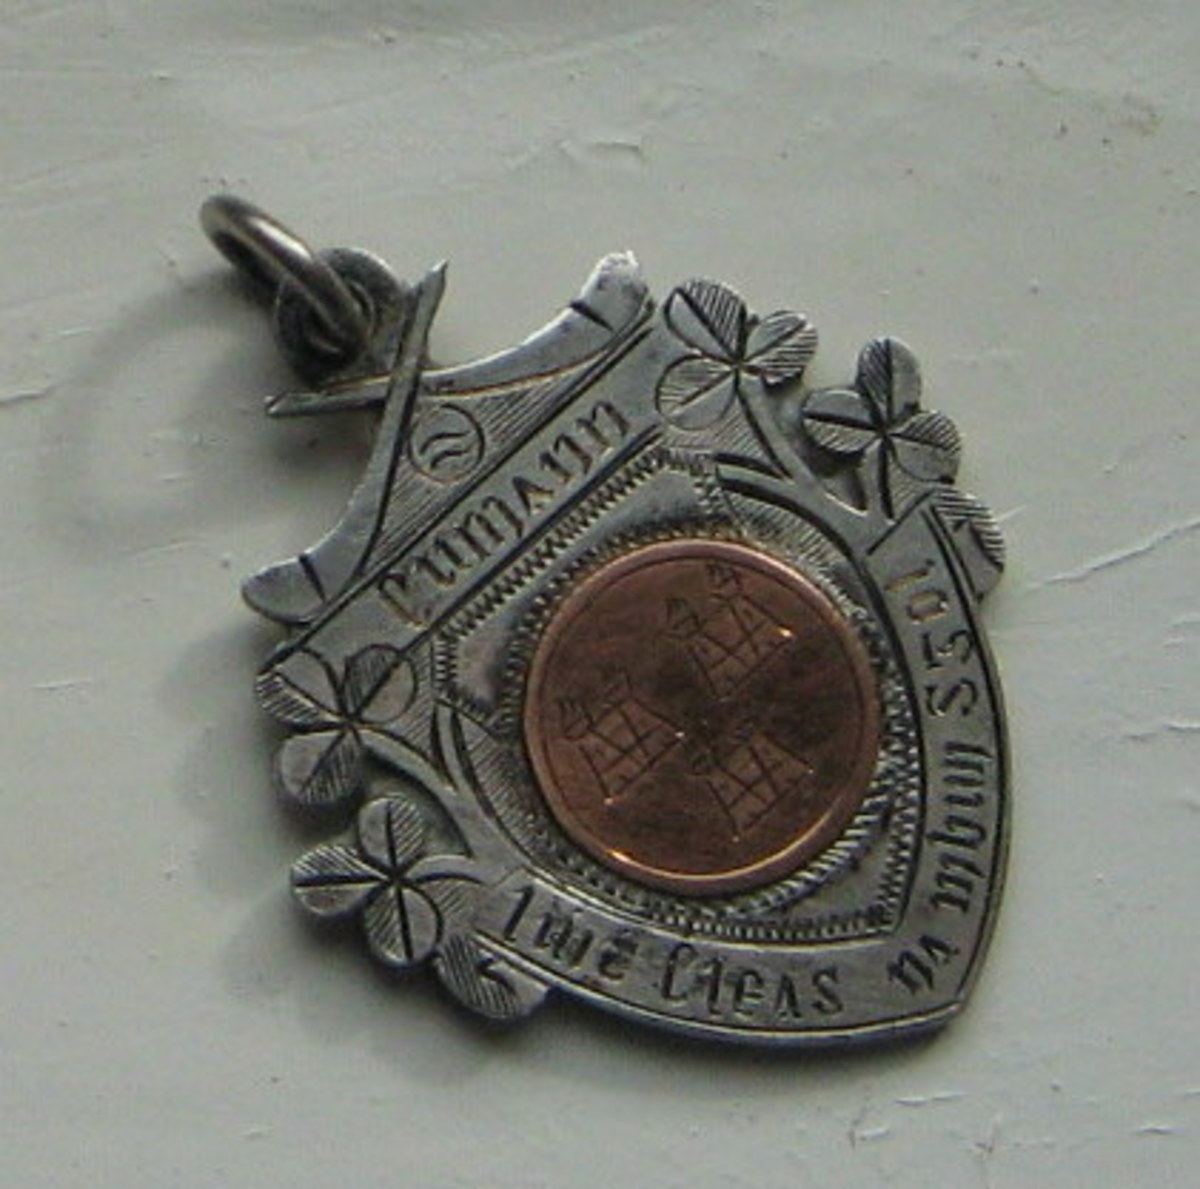 Hurling Medal for winning at Croke Park